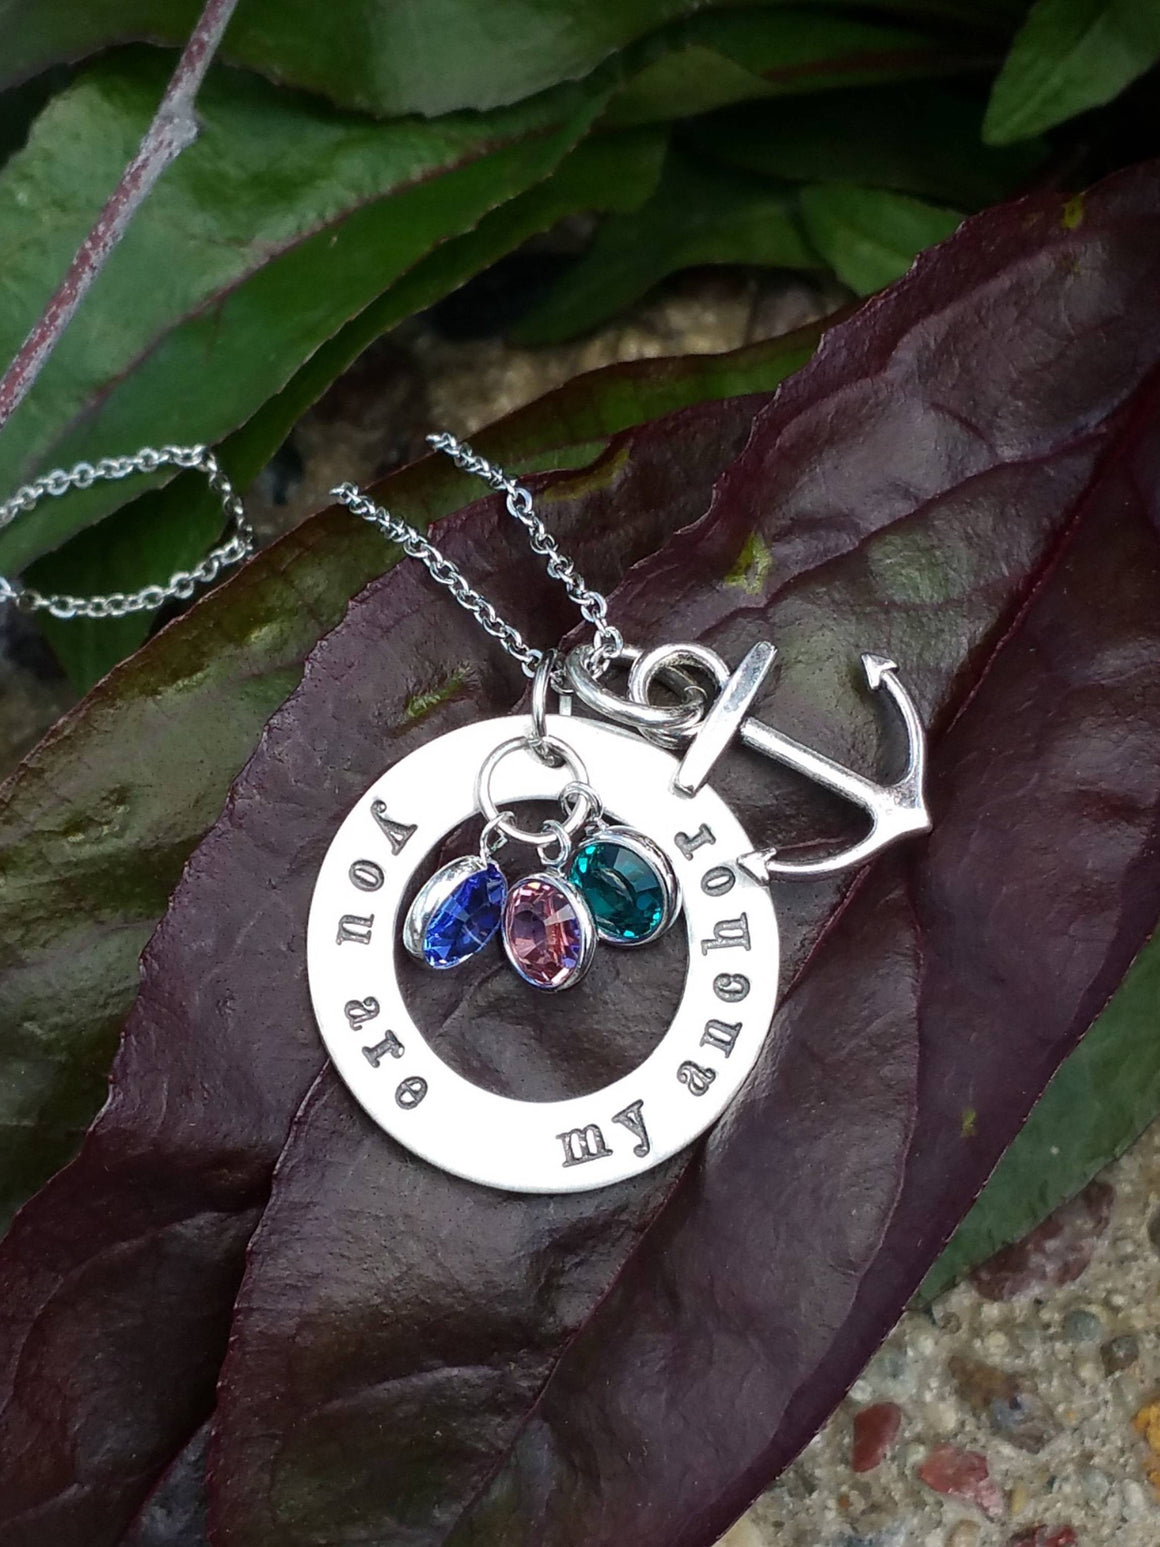 Personalized circle pendant with an anchor charm and birthstones in the middle necklace